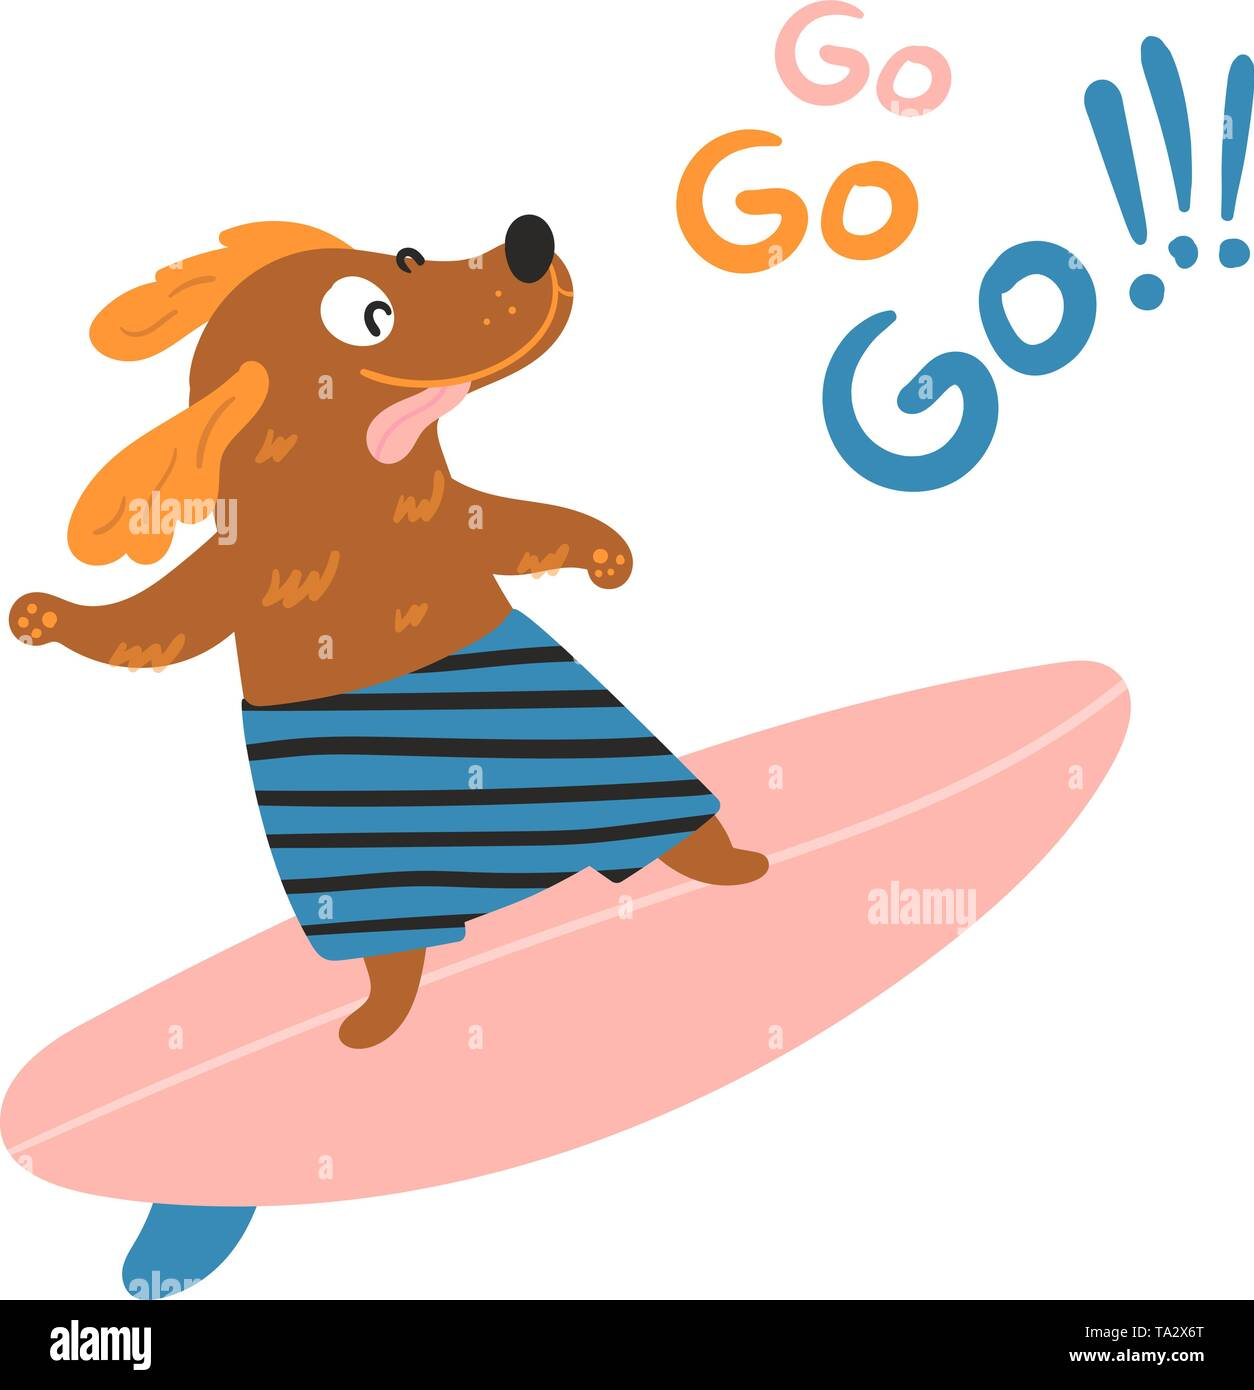 Dog surfer is surfing on a surfboard. Go go go lettering. Purebred pet animal in shorts is training for summer water activity on a bord. Flat vector i - Stock Image